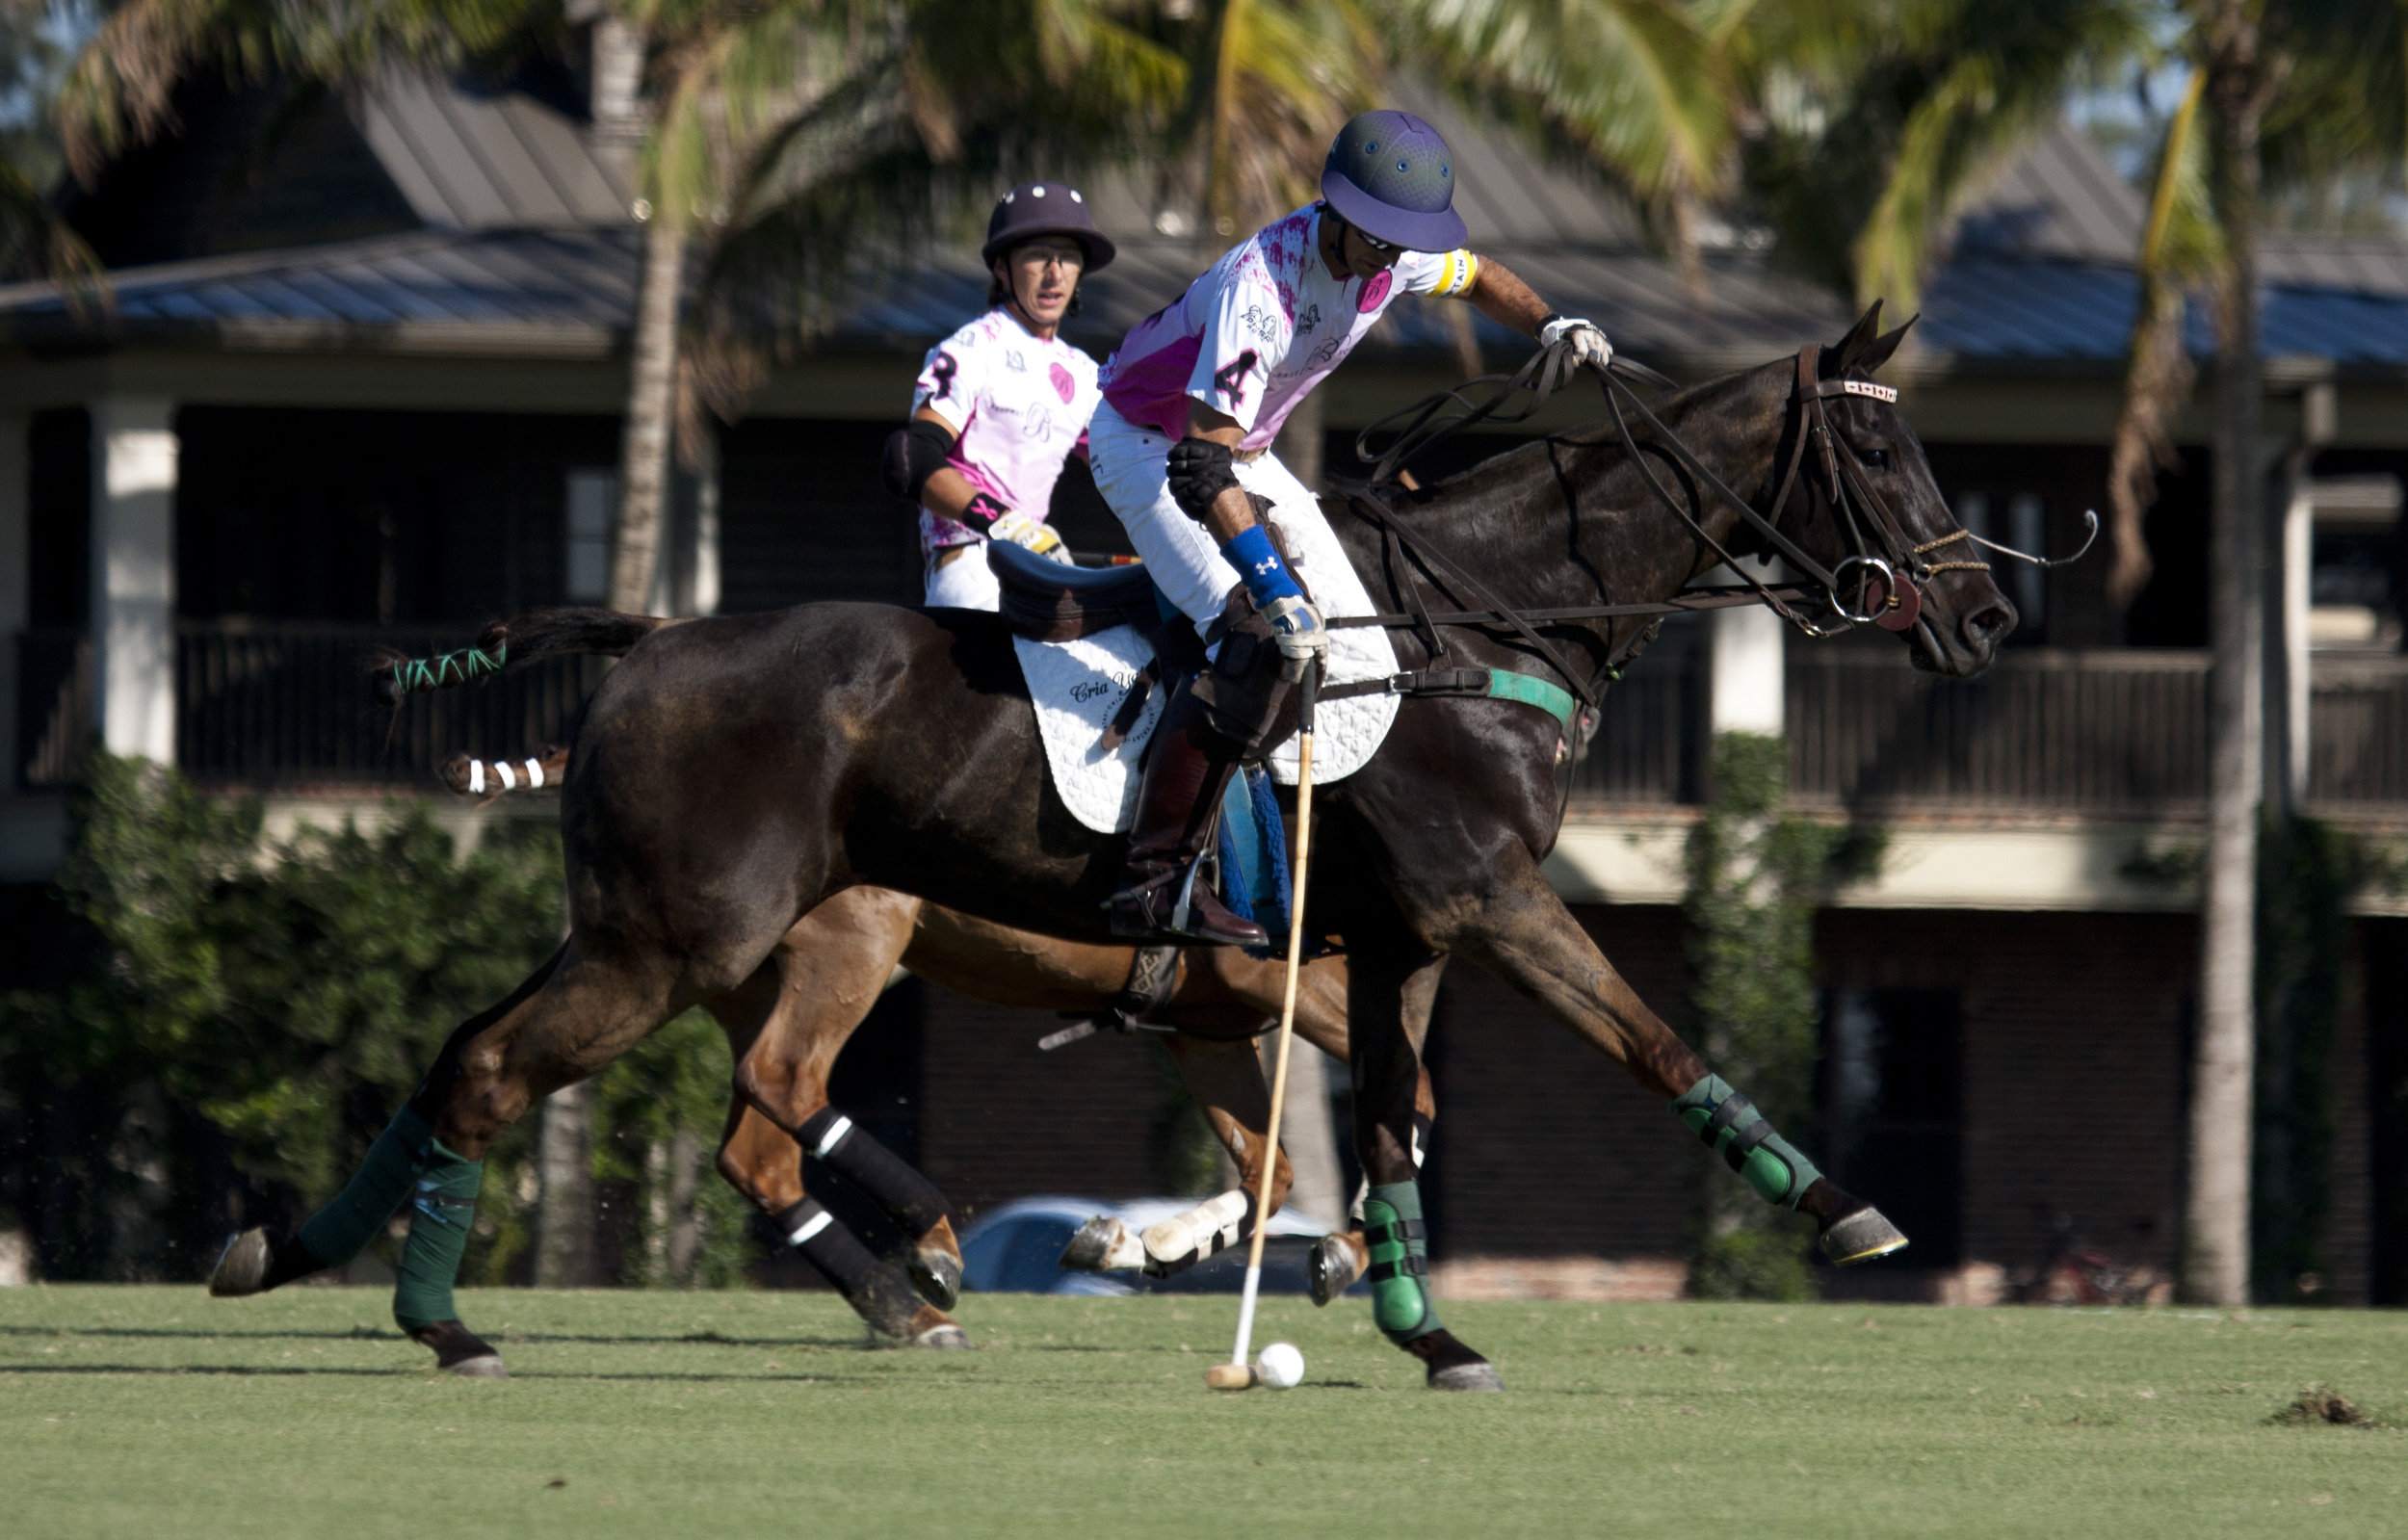 Beverly Equestrian teammates Carlucho Arellano and Tolito Ocampo work together downfield.